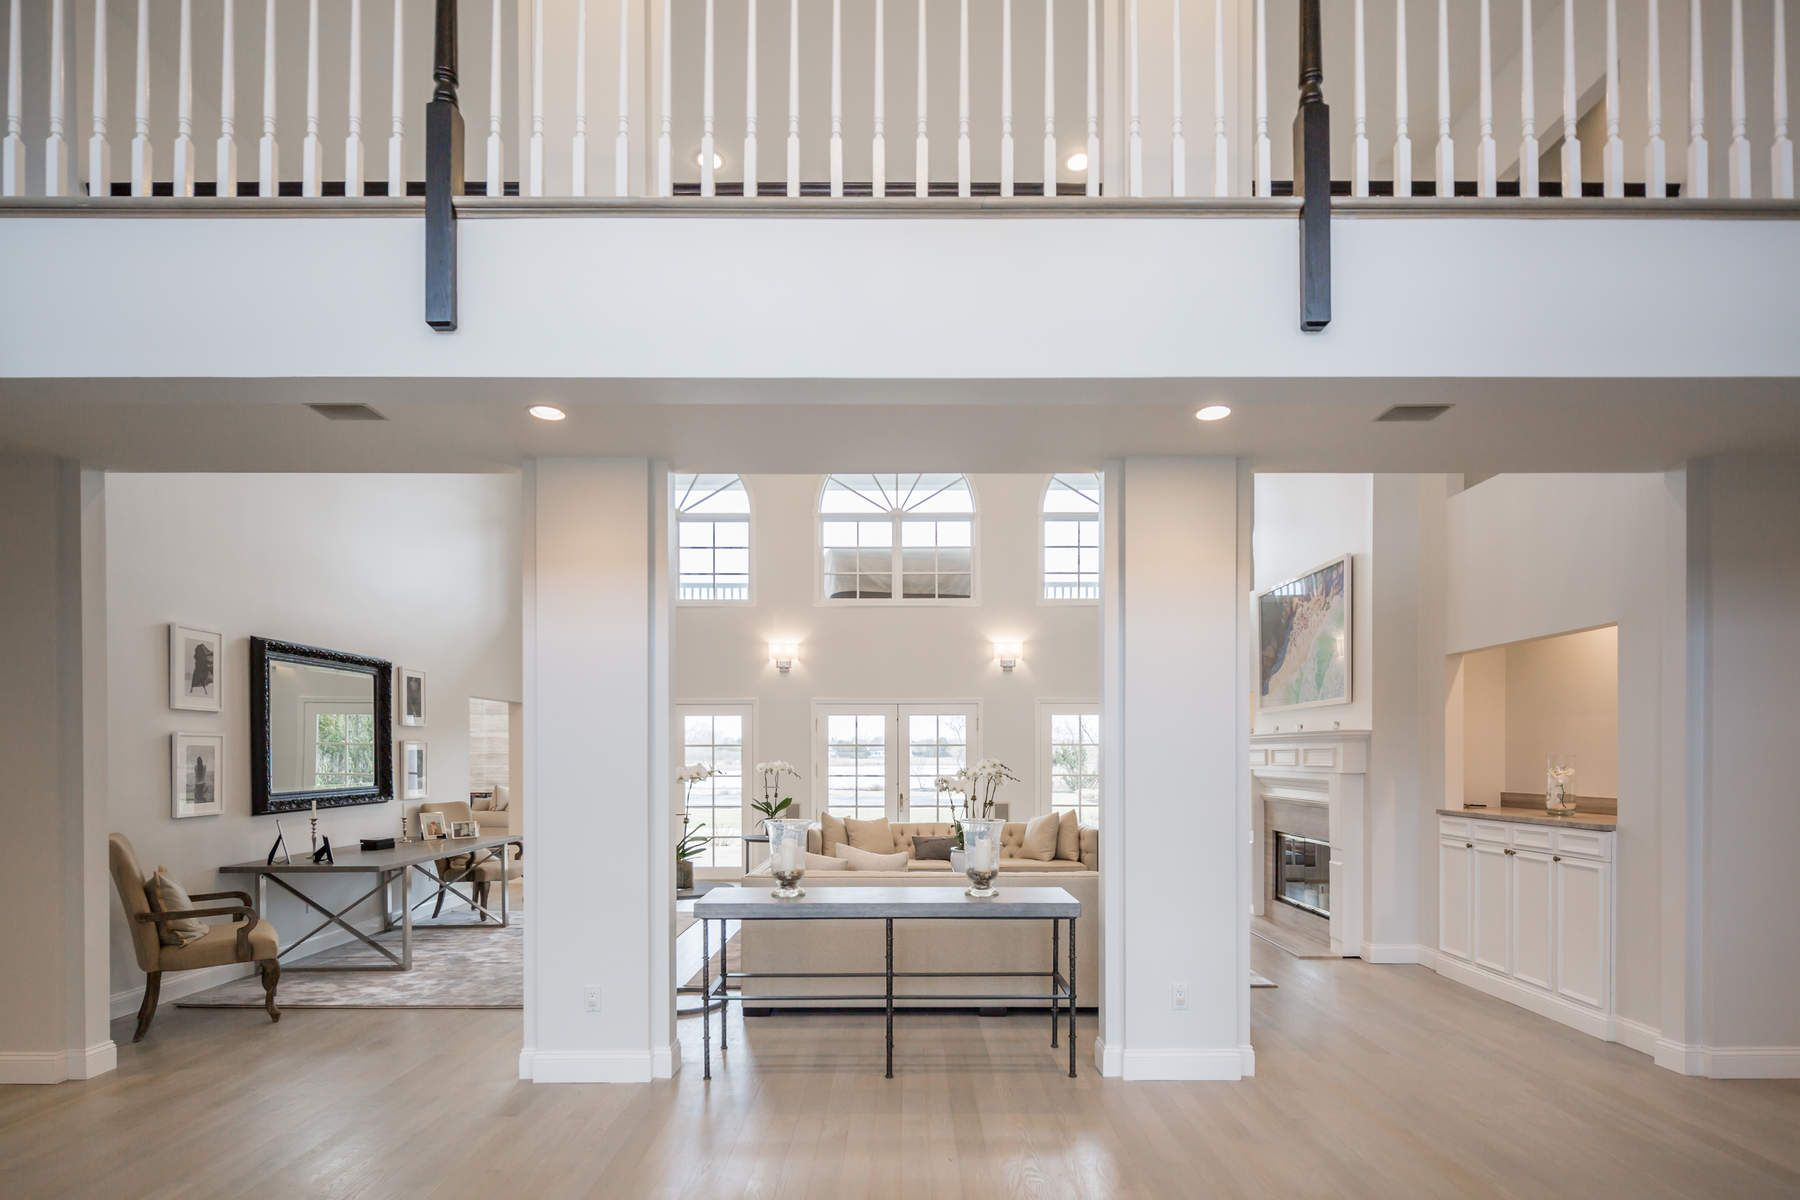 Single Family Home for Rent at 2018 Interior Renovation Just Completed Southampton, New York 11968 United States